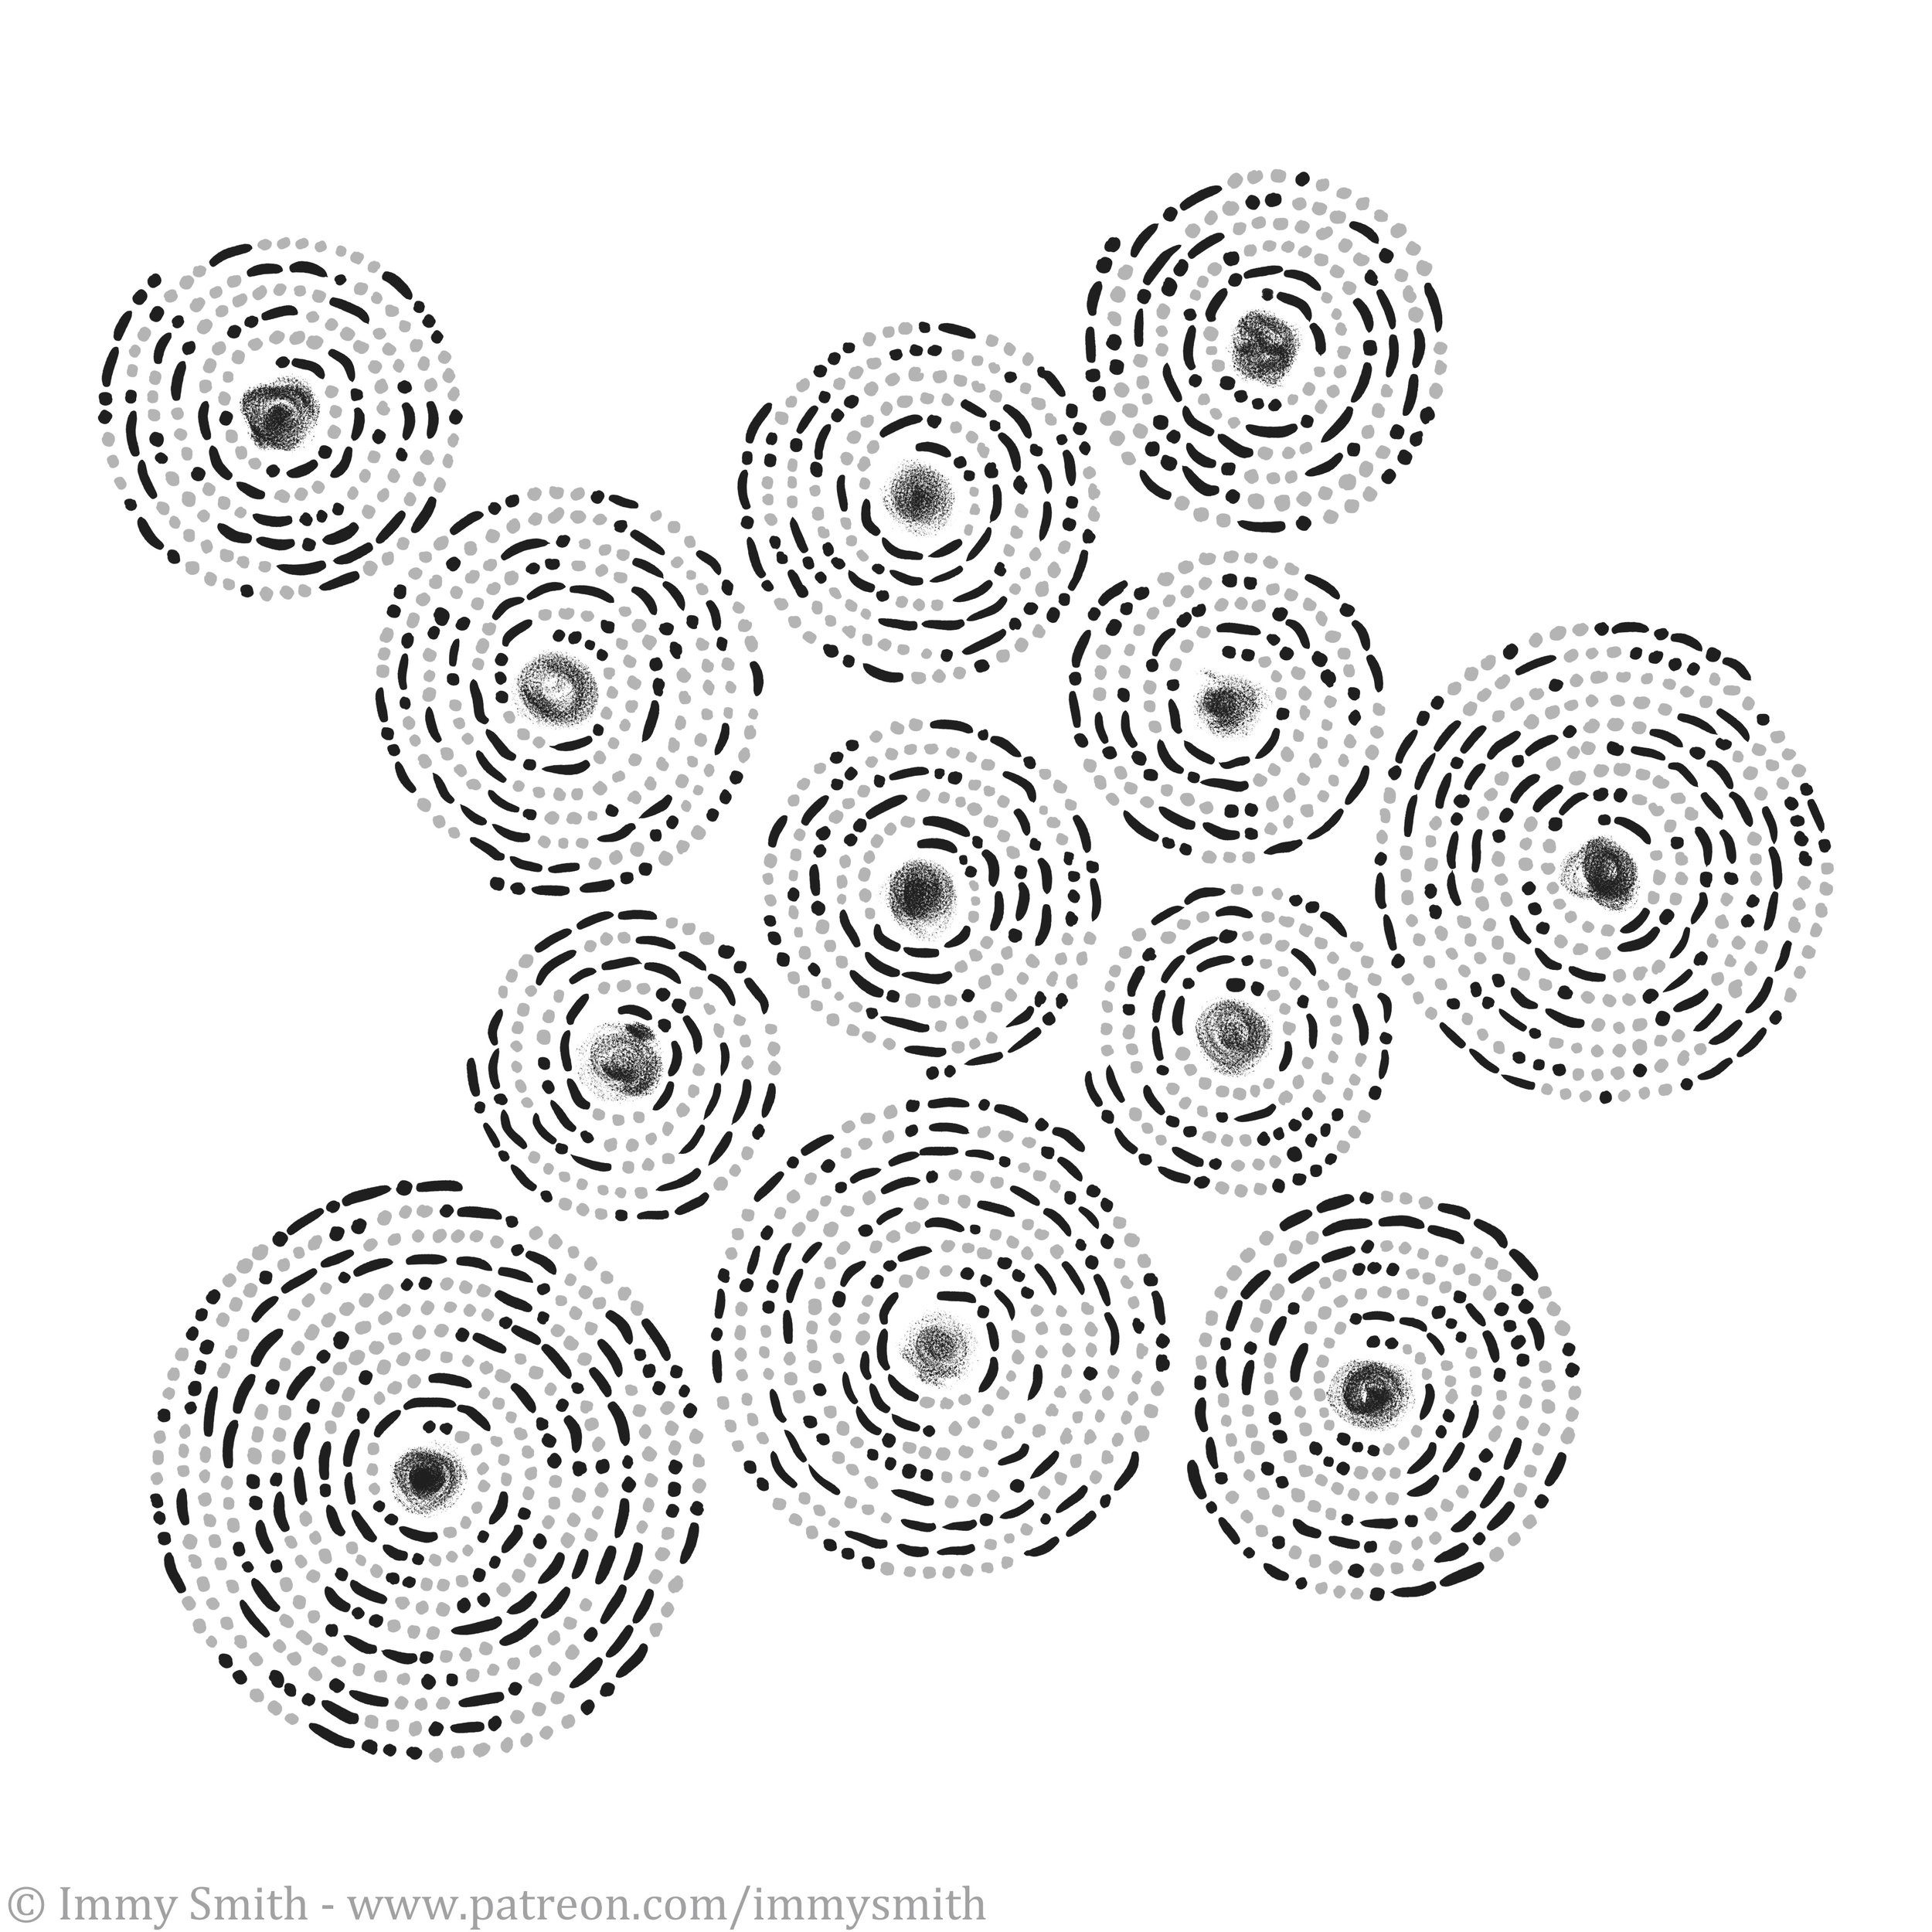 Image description; a pattern of 12 spirals made of black & grey dots and dashes (representing morse code) around black charcoal-like smudges.